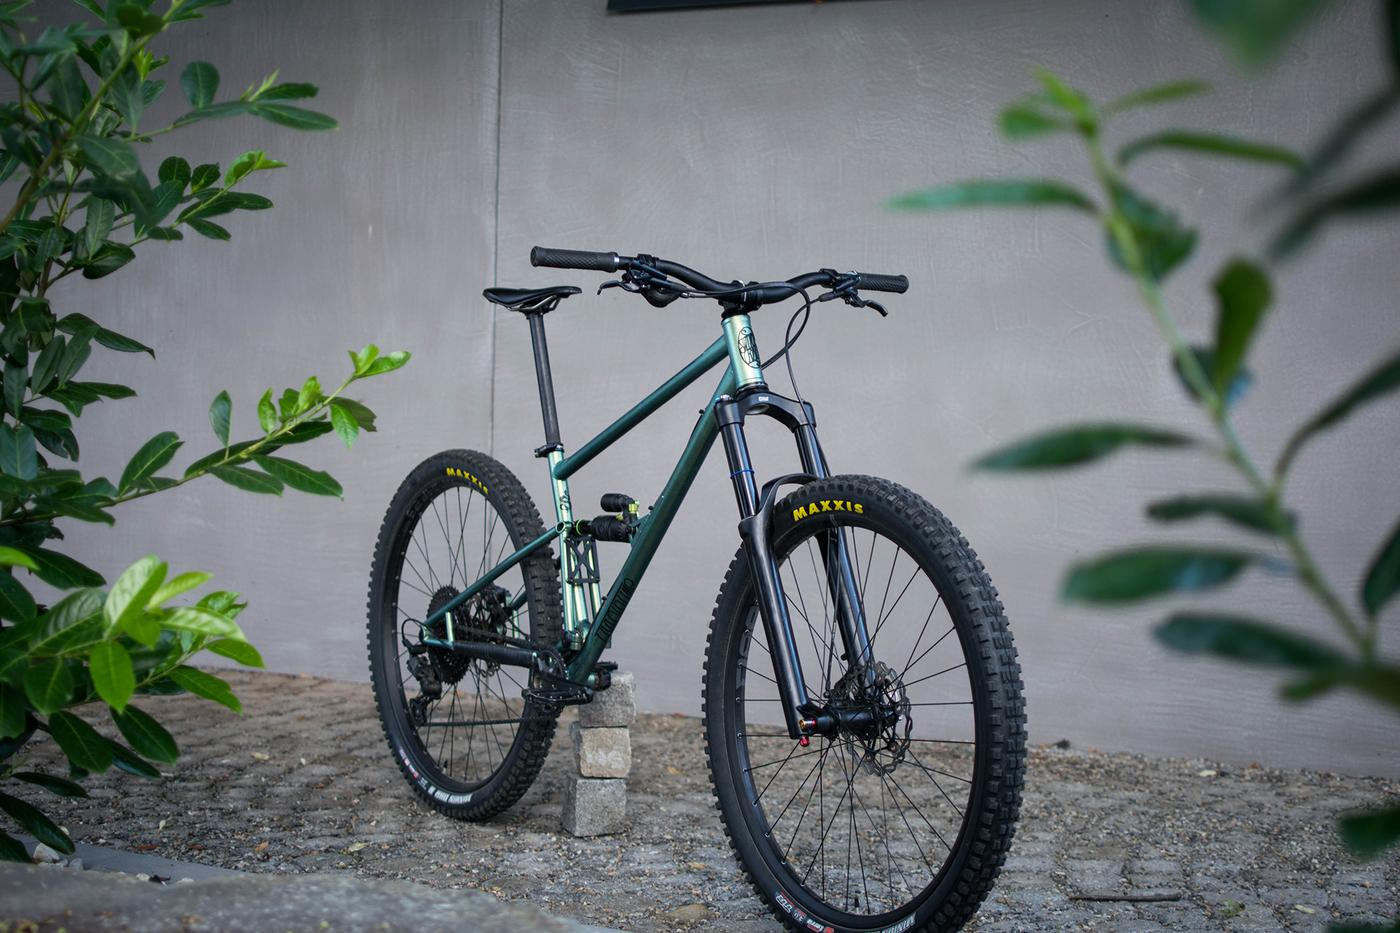 Readers' Rides: Jakub's Self-Built Steel Full Suspension MTB from the Czech Republic